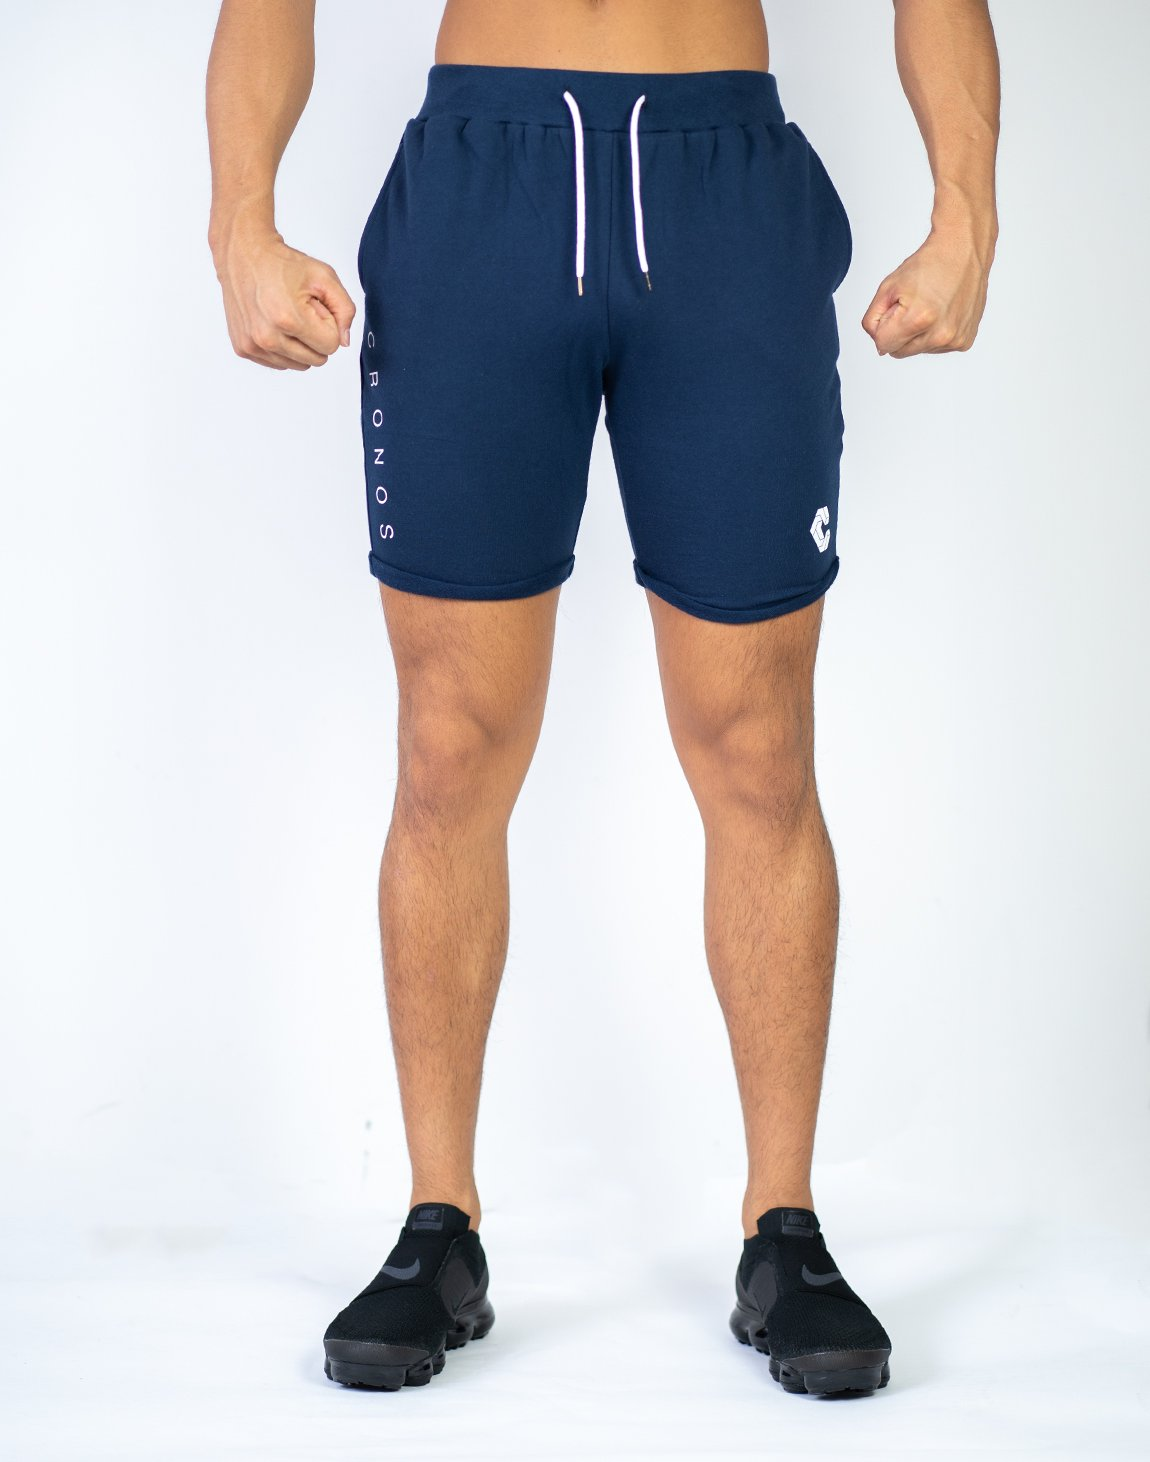 <img class='new_mark_img1' src='https://img.shop-pro.jp/img/new/icons55.gif' style='border:none;display:inline;margin:0px;padding:0px;width:auto;' />CRONOS PILE FABRIC SHORTS  NAVY